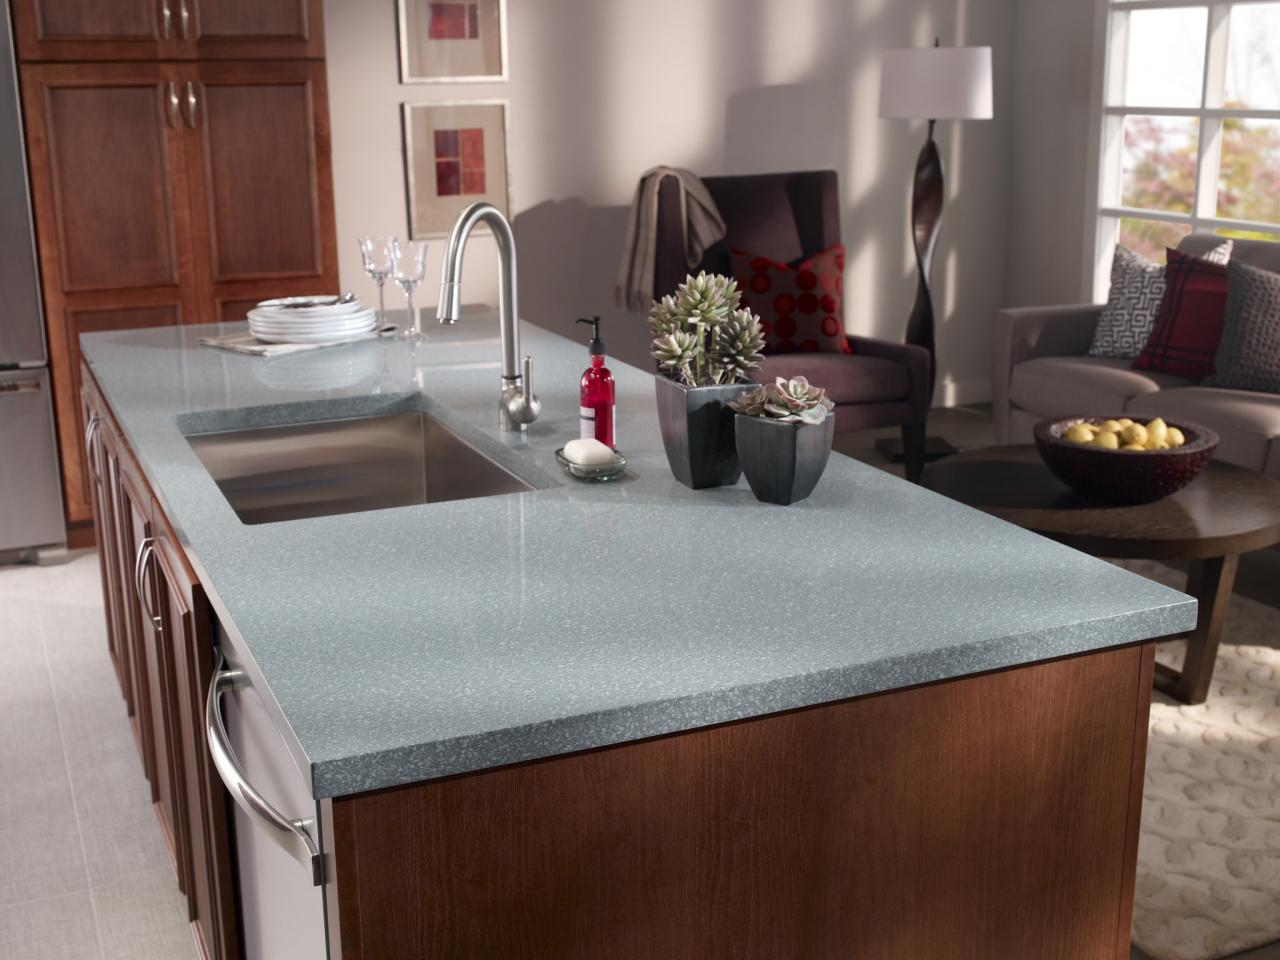 Corian Countertops For The Kitchen